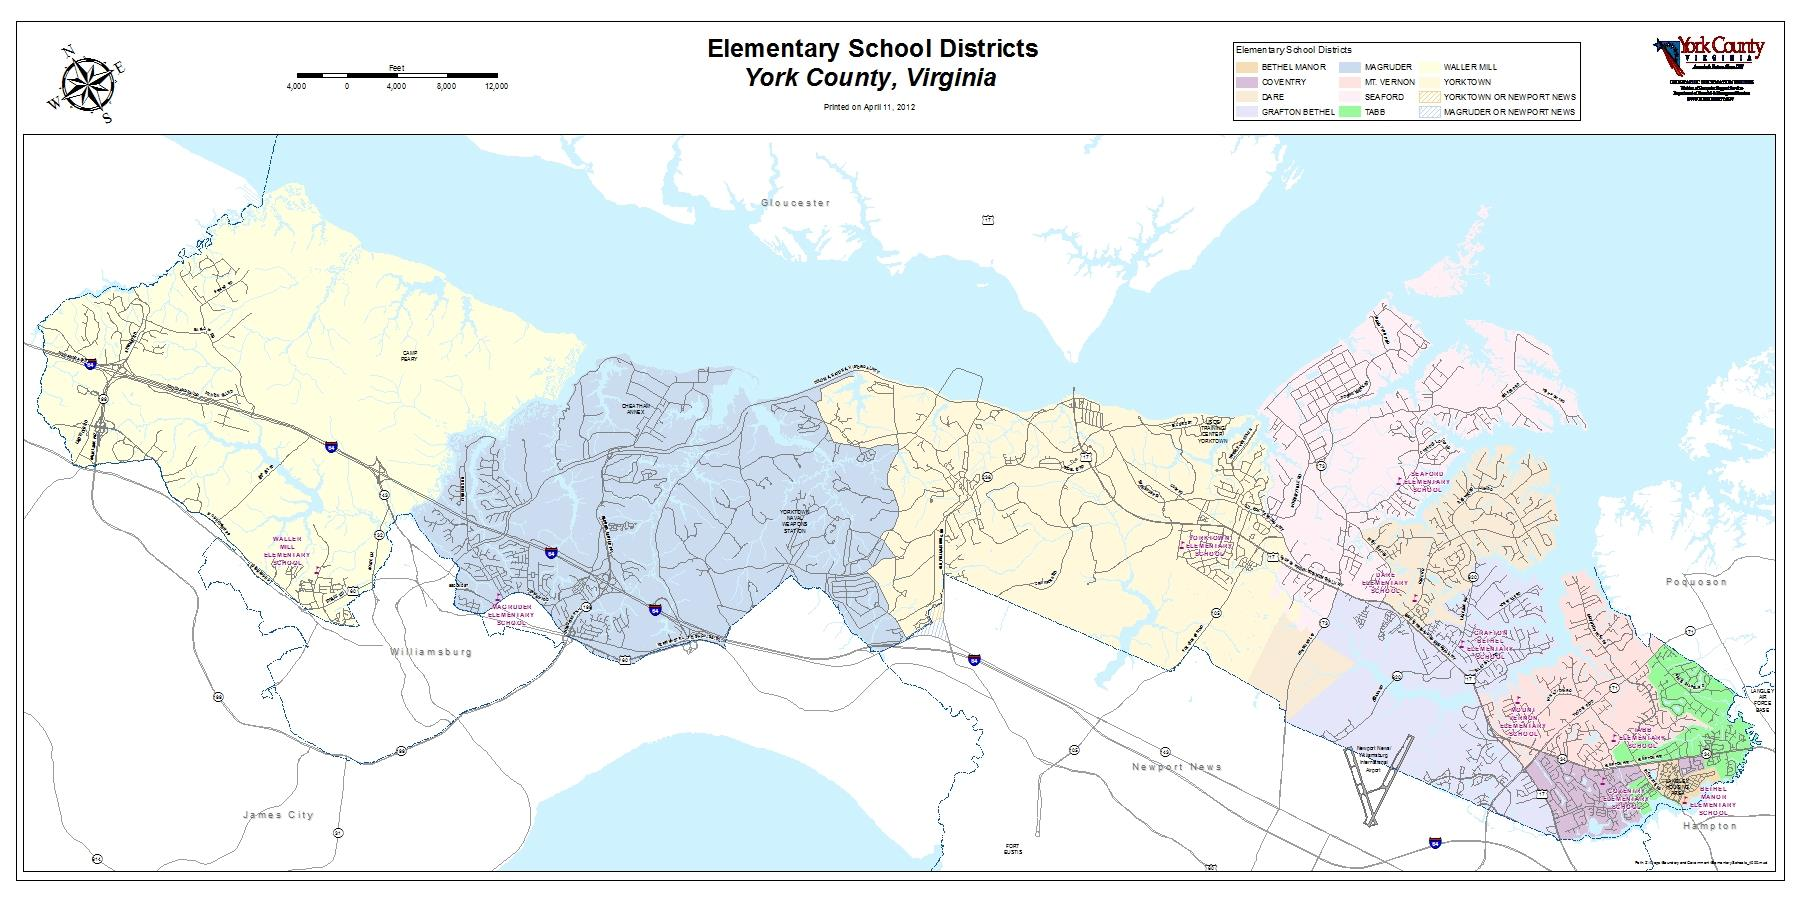 District Maps | York County, VA on site map, local map, chapter map, street map, field map, class map, township map, metropolitan map, facility map, county map, parent map, school map, precinct map, deep loot map,